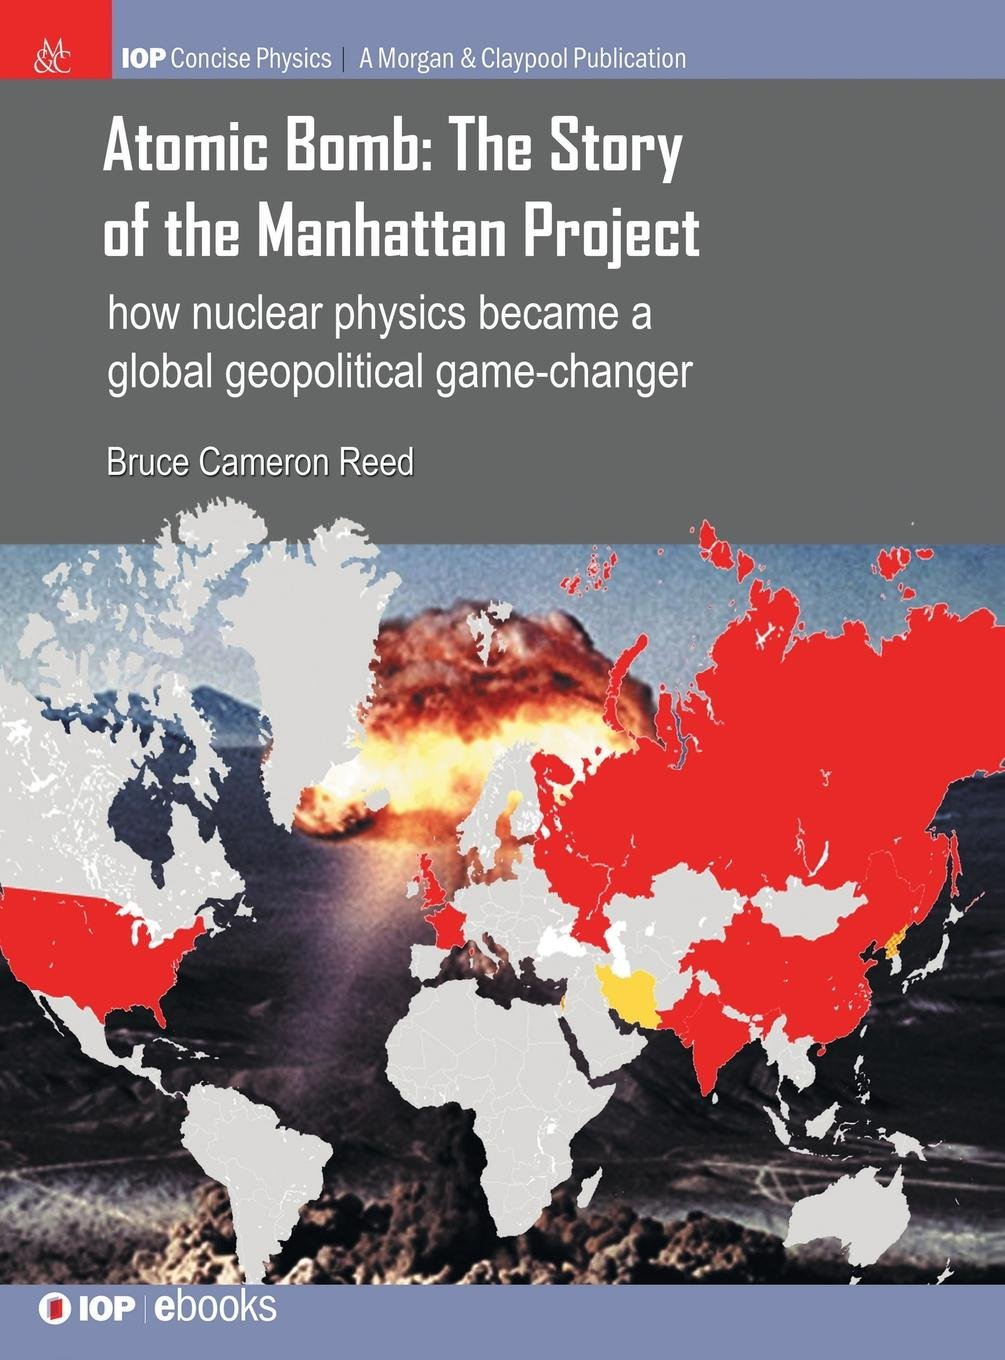 Atomic Bomb: The Story of the Manhattan Project: How Nuclear Physics Became a Global Geopolitical Game-Changer (Iop Concise Physics) pdf